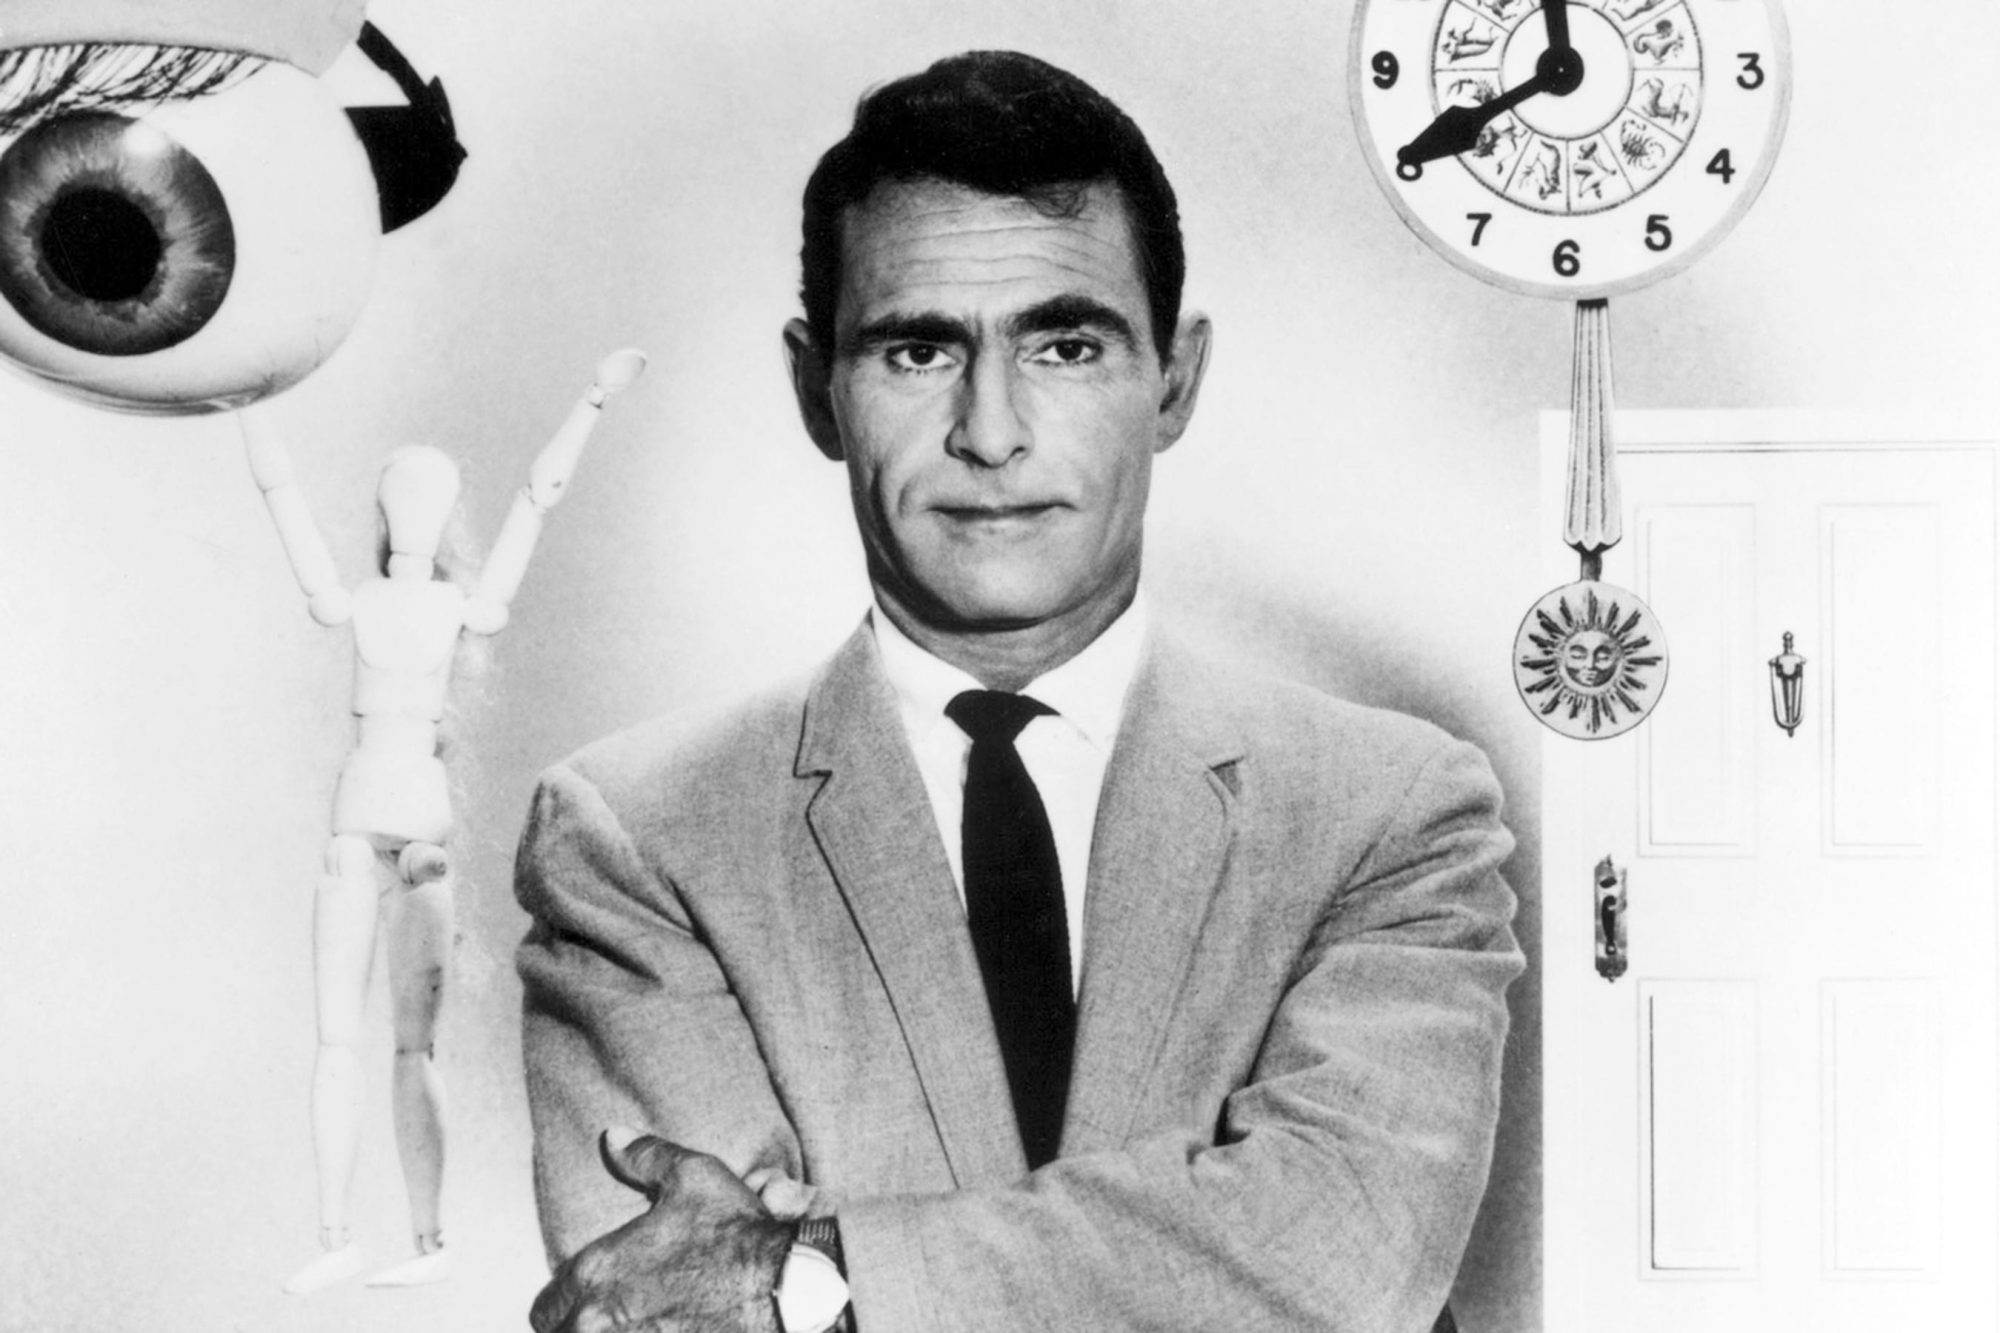 THE TWILIGHT ZONE, Rod Serling, 1959-64